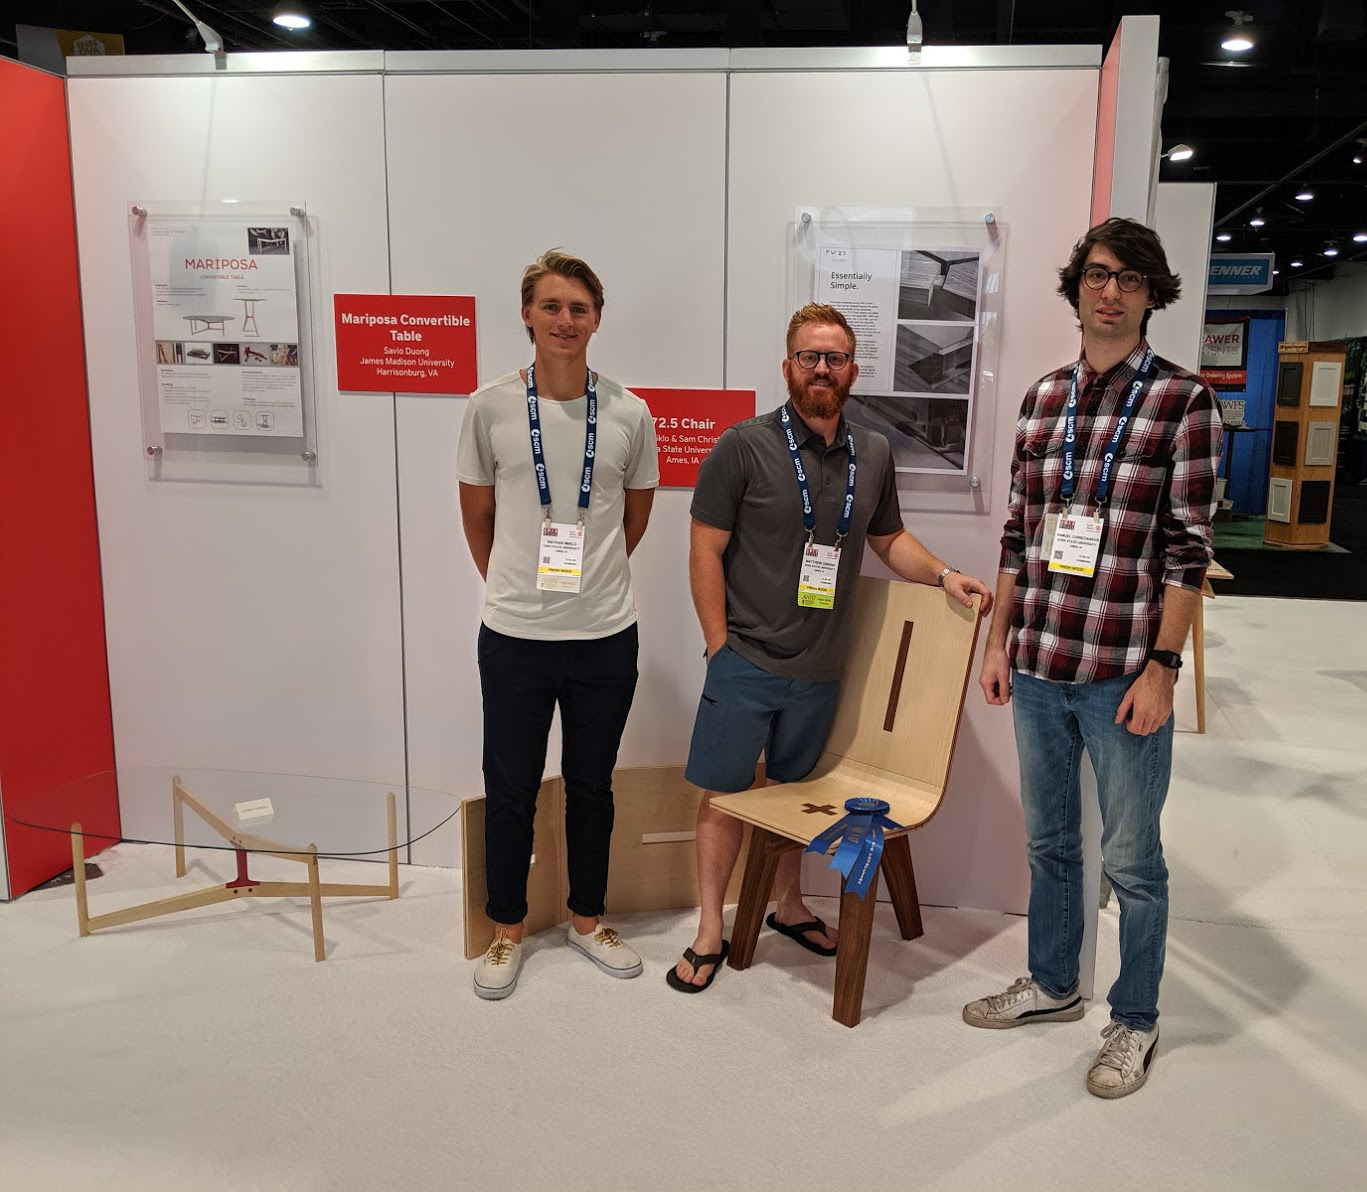 Iowa State industrial design students Nathan Miklo, left, and Sam Christianson, right, with instructor Matthew Obbink and their award-winning 72.5 Chair at the 2019 AWFS Fair in Las Vegas